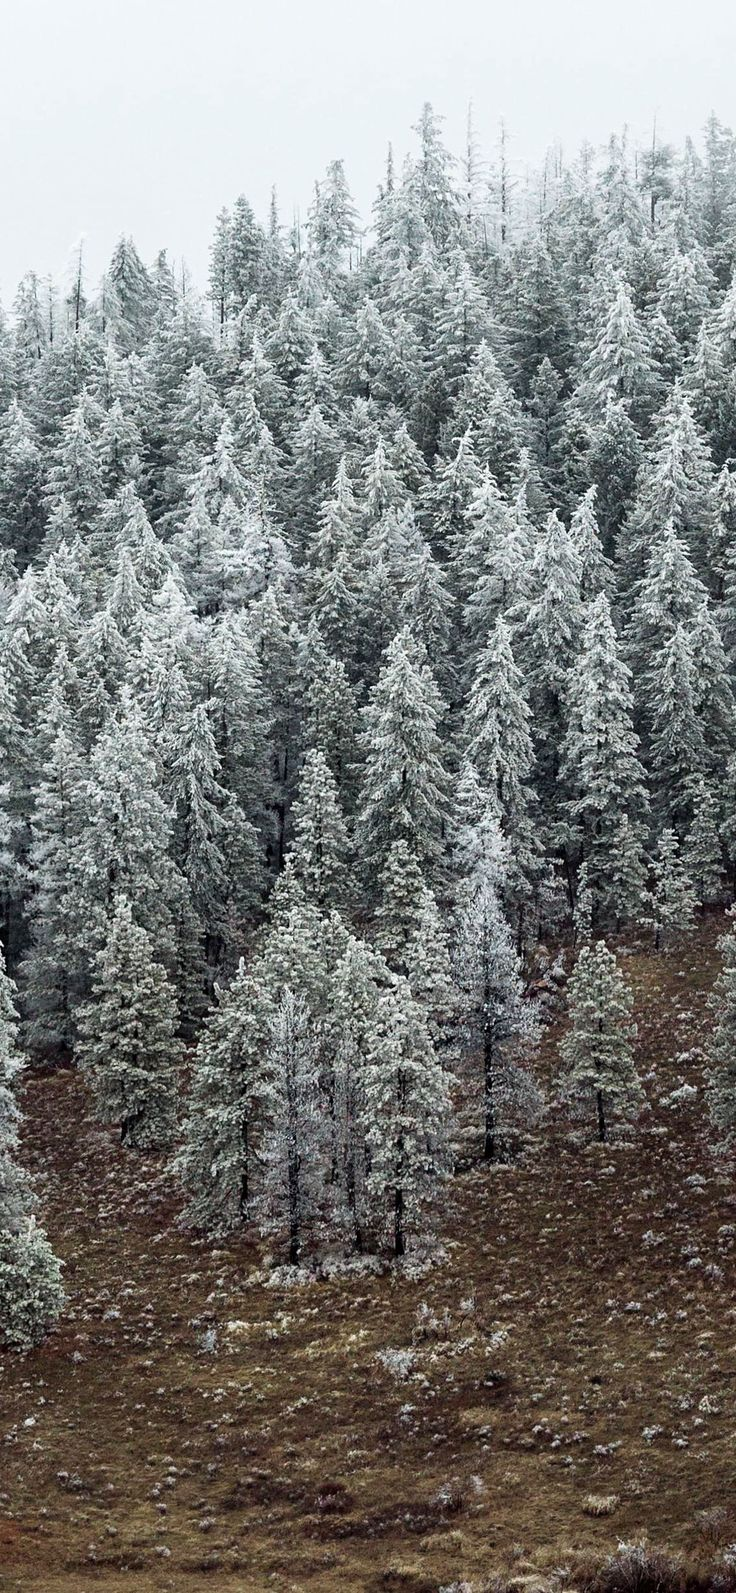 entre nous snowy pine tree forest wallpaper Iphone X